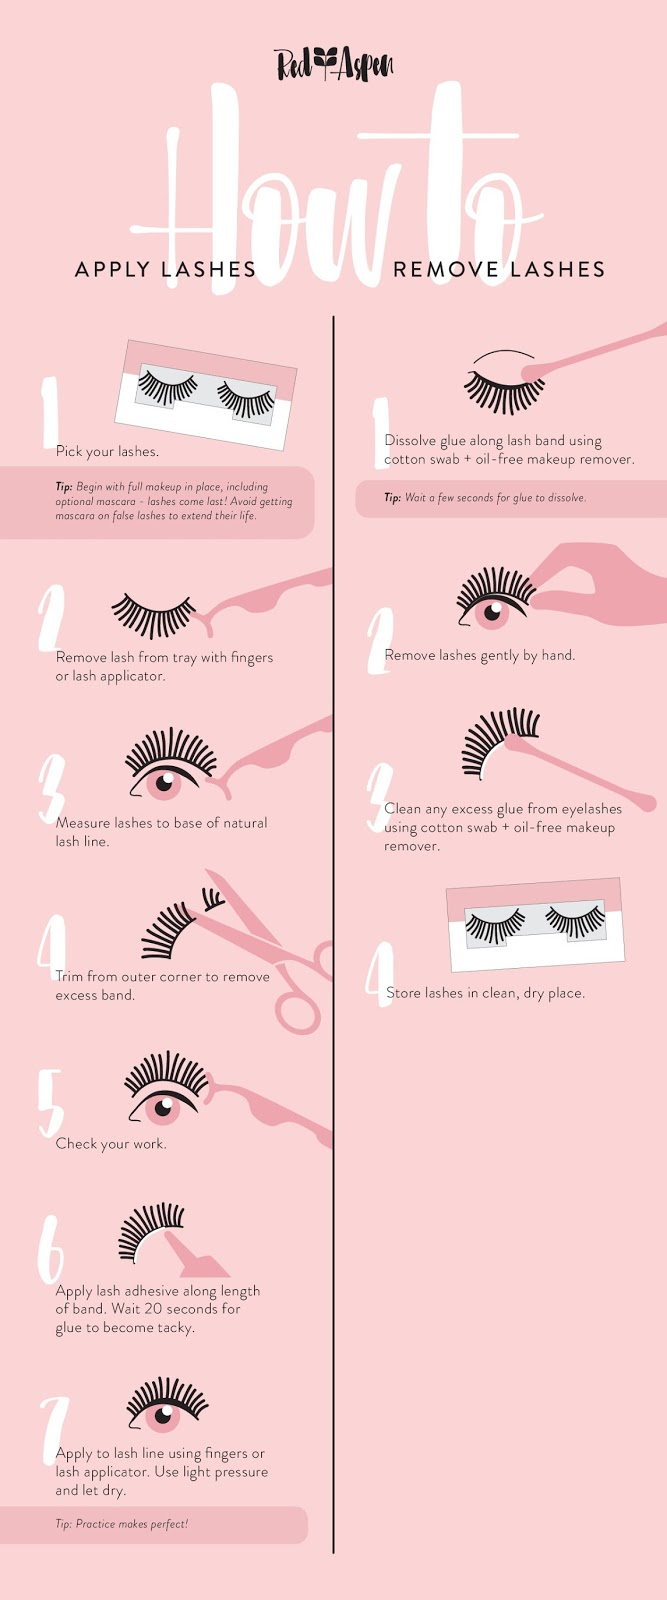 4e6f15a88cc I asked around a little on Instagram about people's experience with false  lashes and they shared similar ...